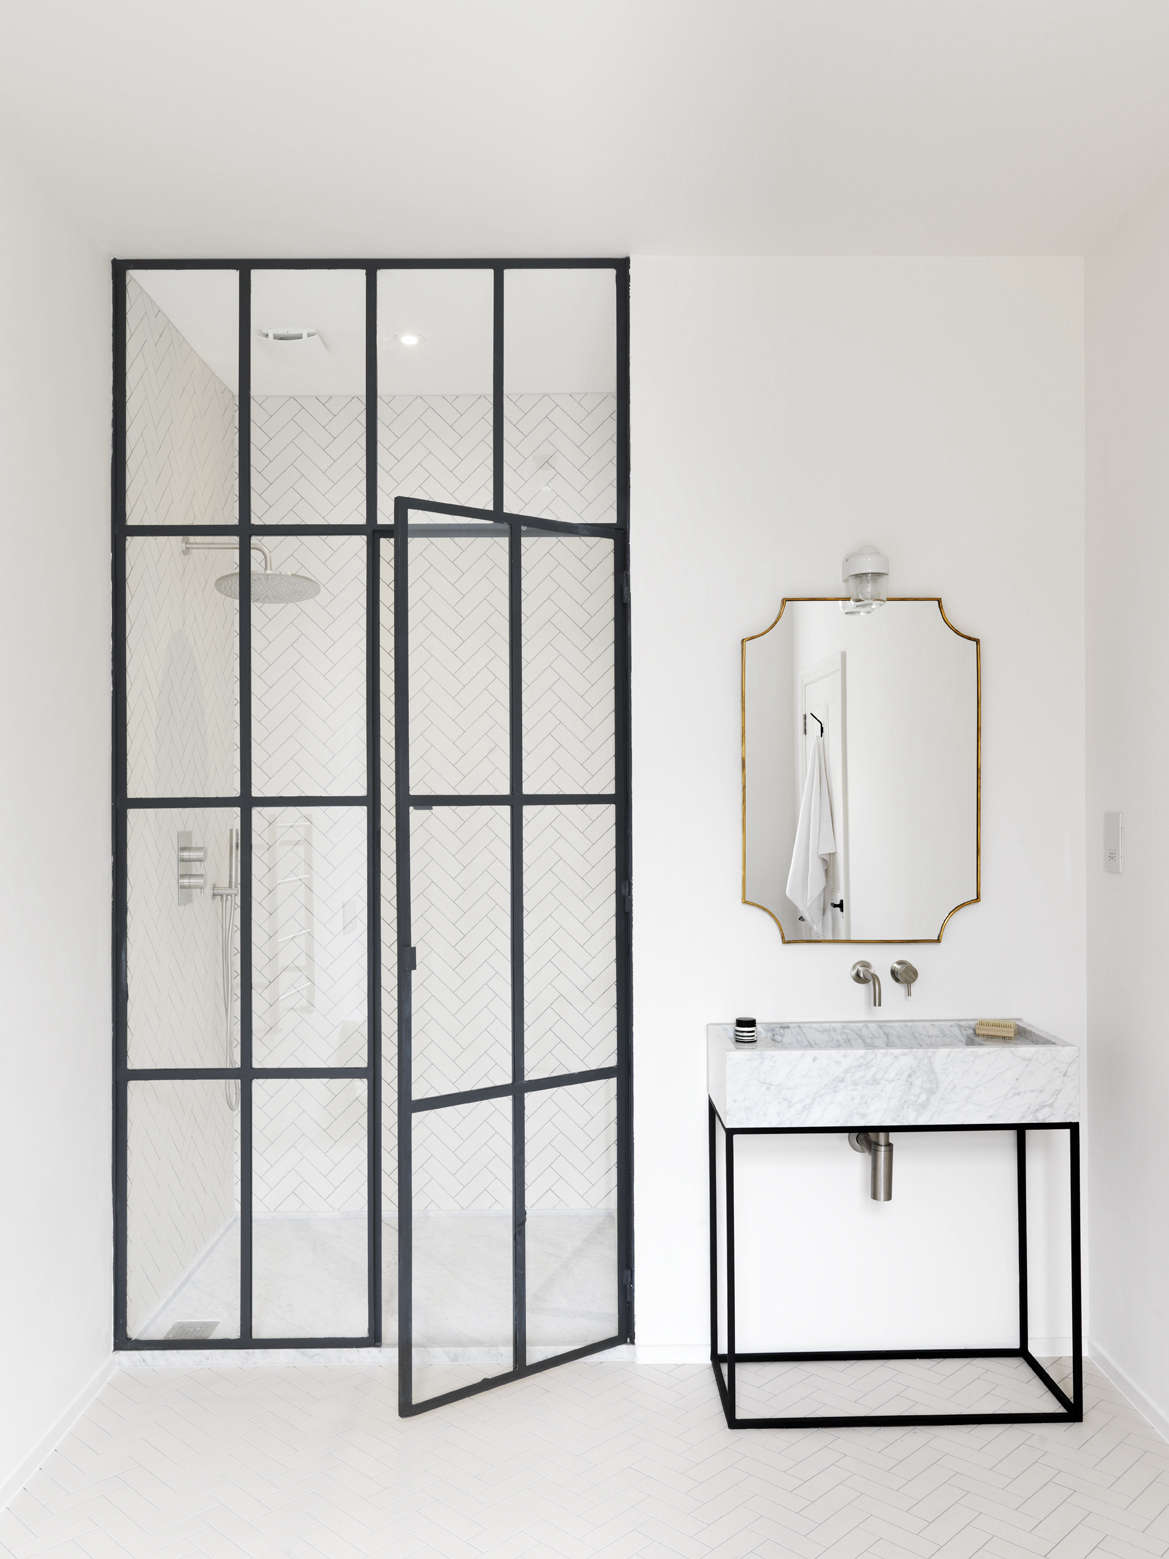 An interior steel frame door adds industrial structure to an all-white bathroom; see